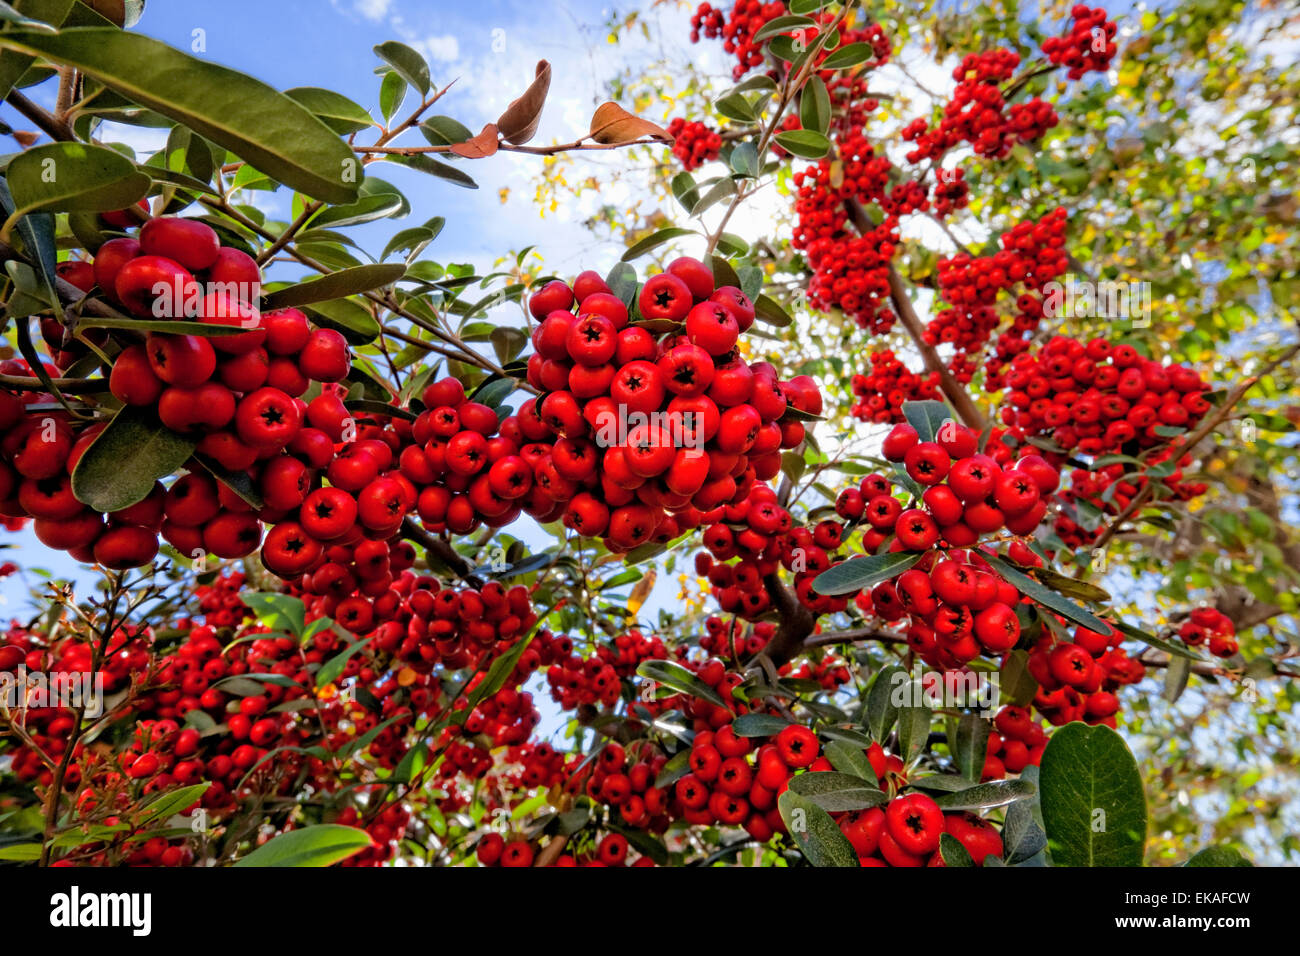 Pyracantha (berries) is a genus of thorny evergreen large shrubs in the family Rosaceae, with common name firethorn - Stock Image